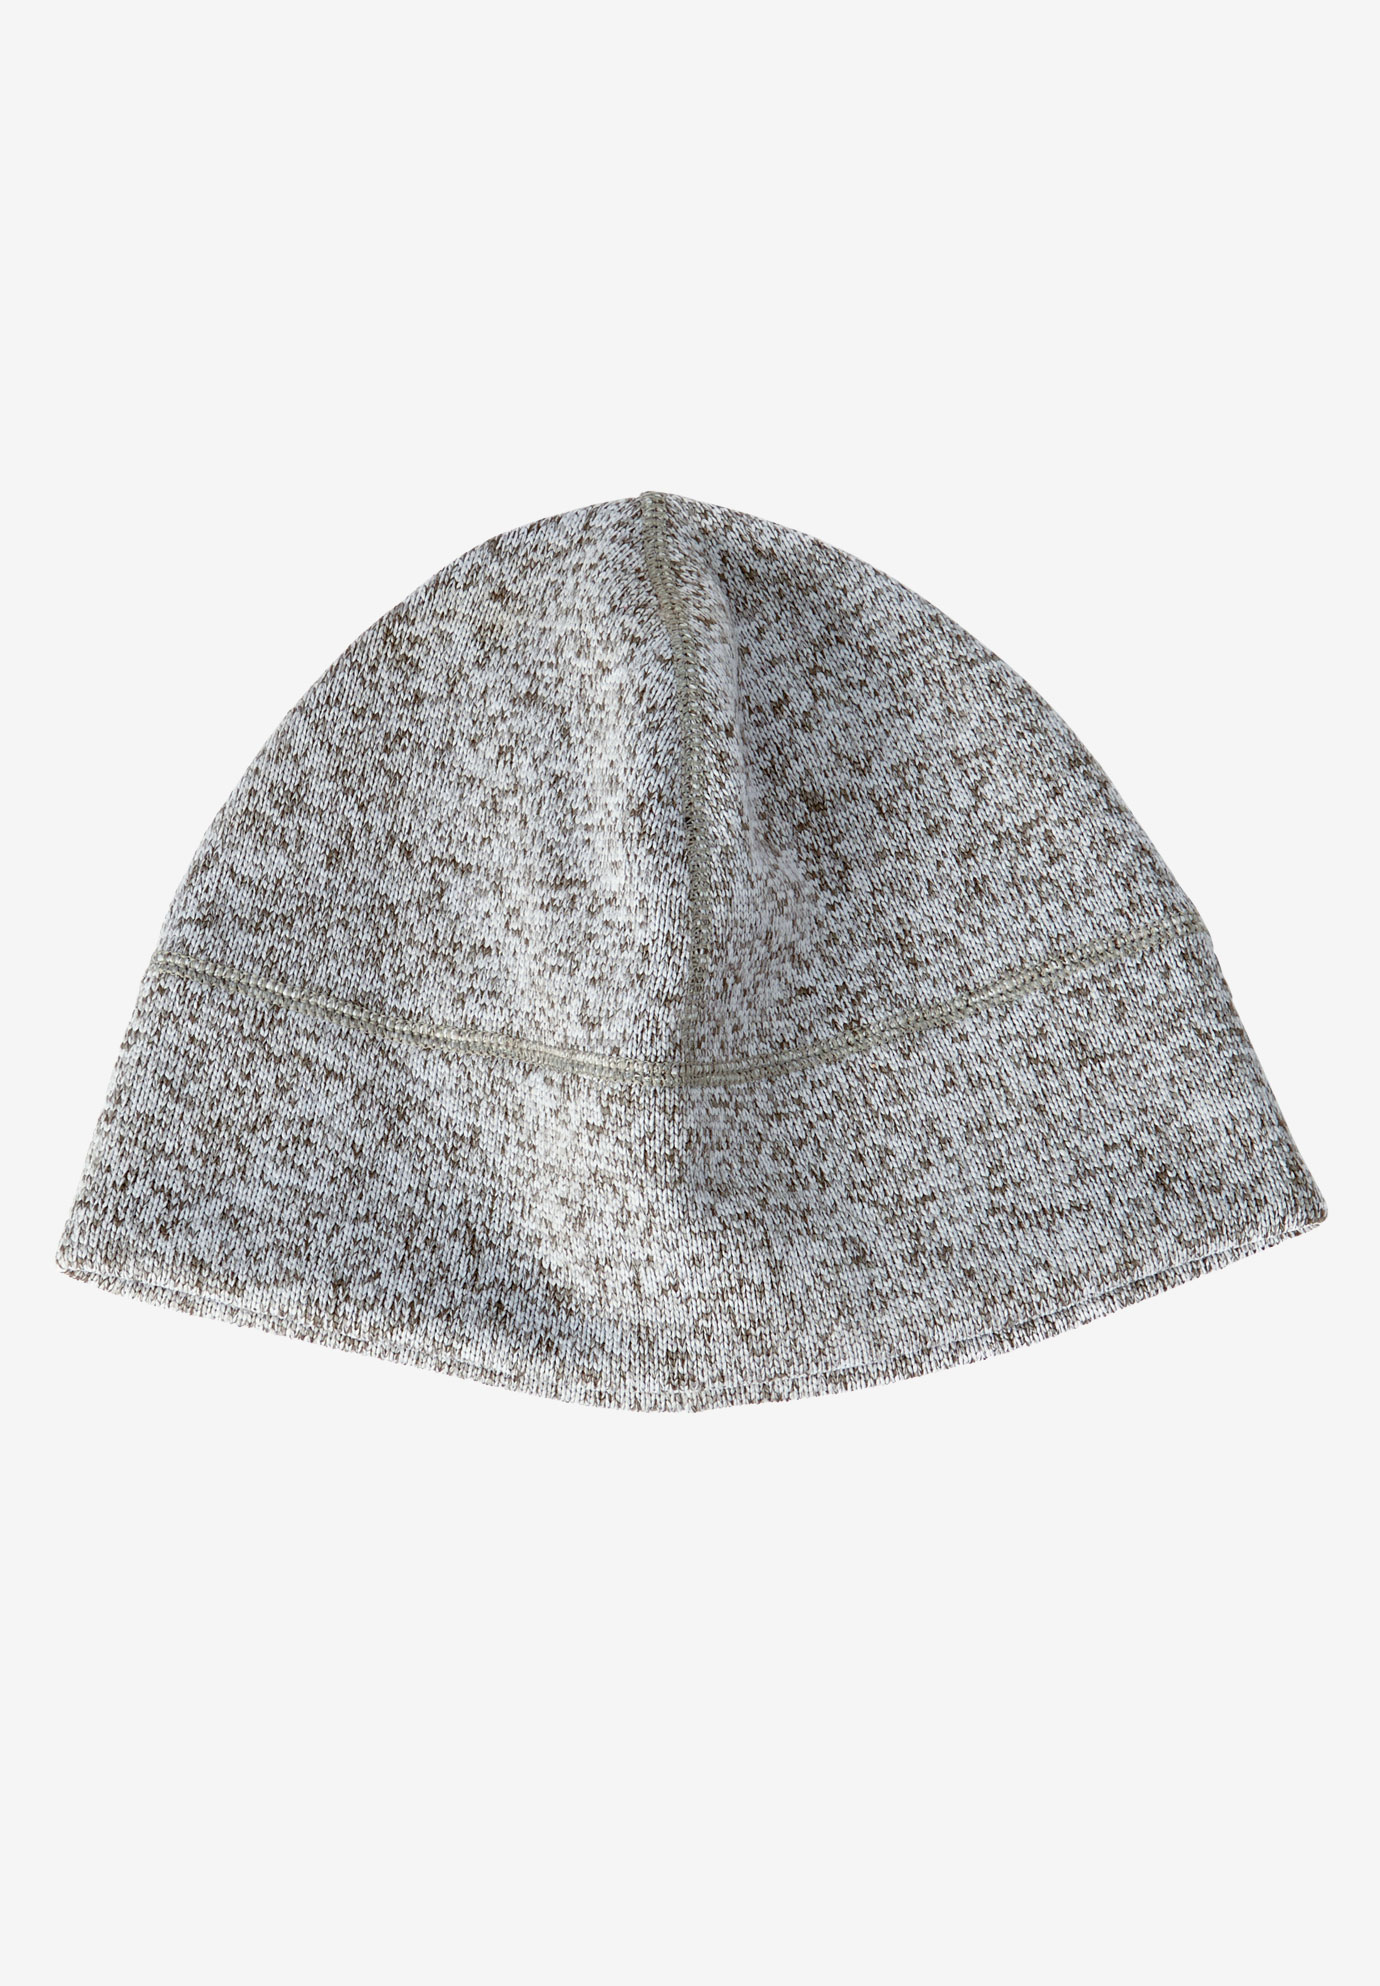 Sweater Fleece Cap,